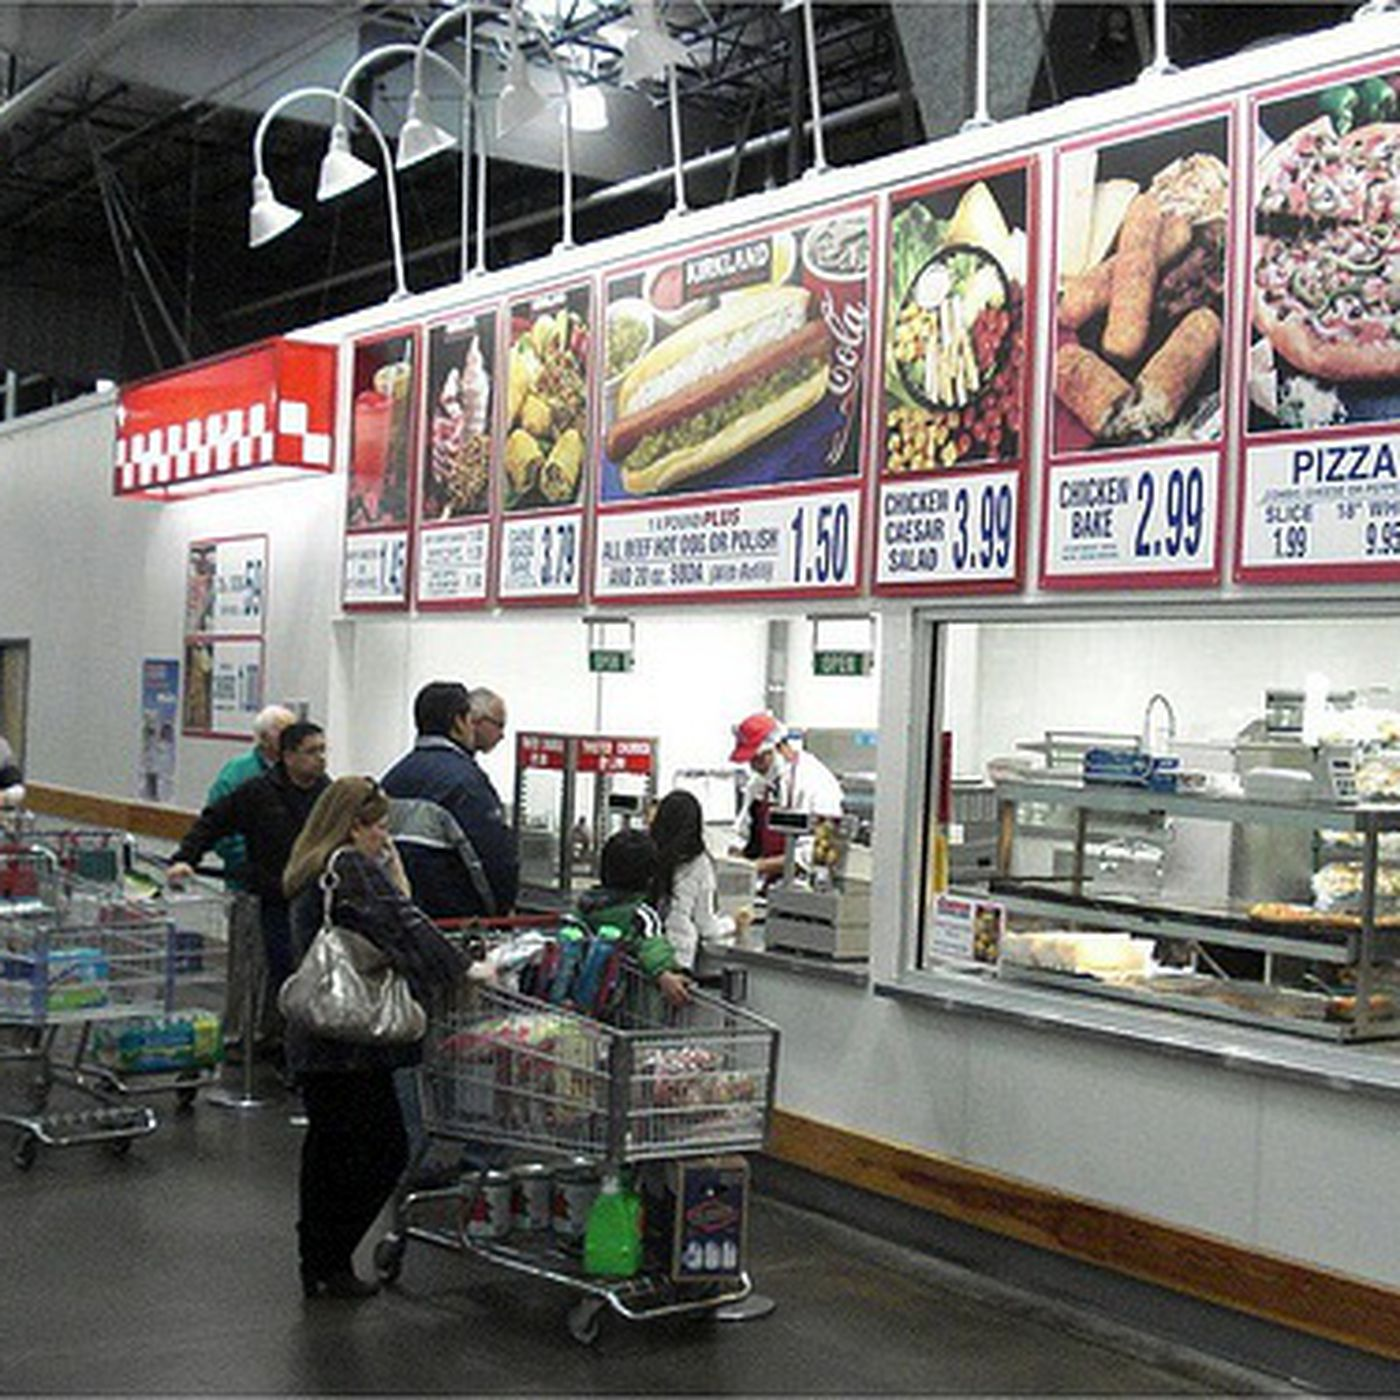 Broke Americans Actually Enjoy Eating at Costco, Ikea - Eater